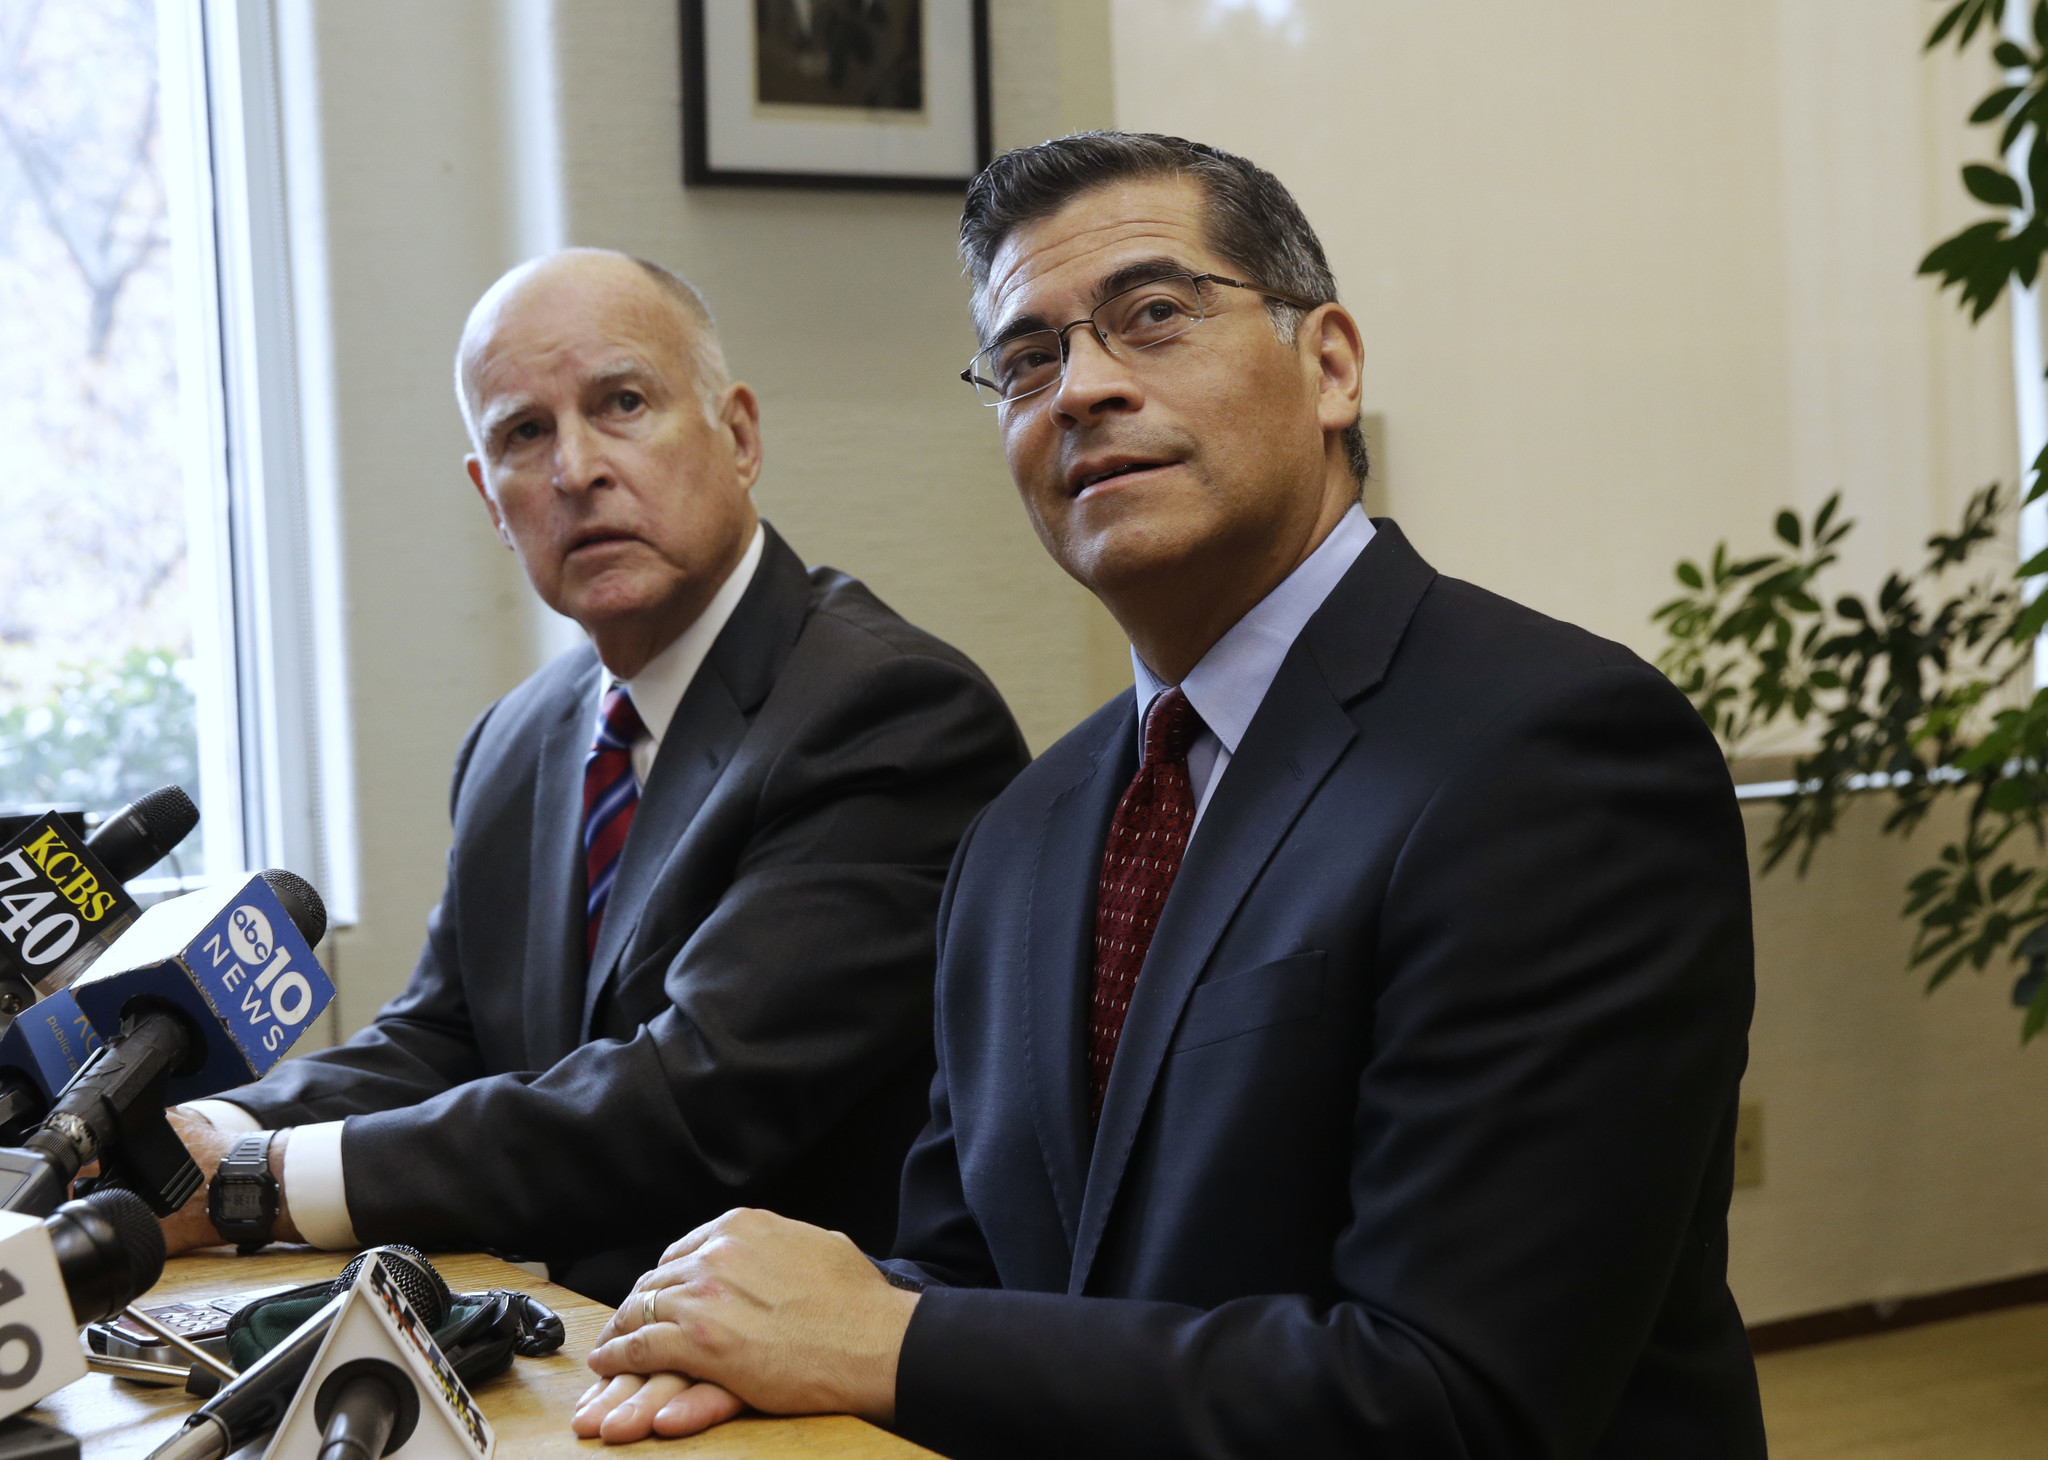 Gov. Jerry Brown, left, and Rep. Xavier Becerra (D-Los Angeles), Brown's nominee for state attorney general, at a news conference last month. (Rich Pedroncelli / Associated Press)